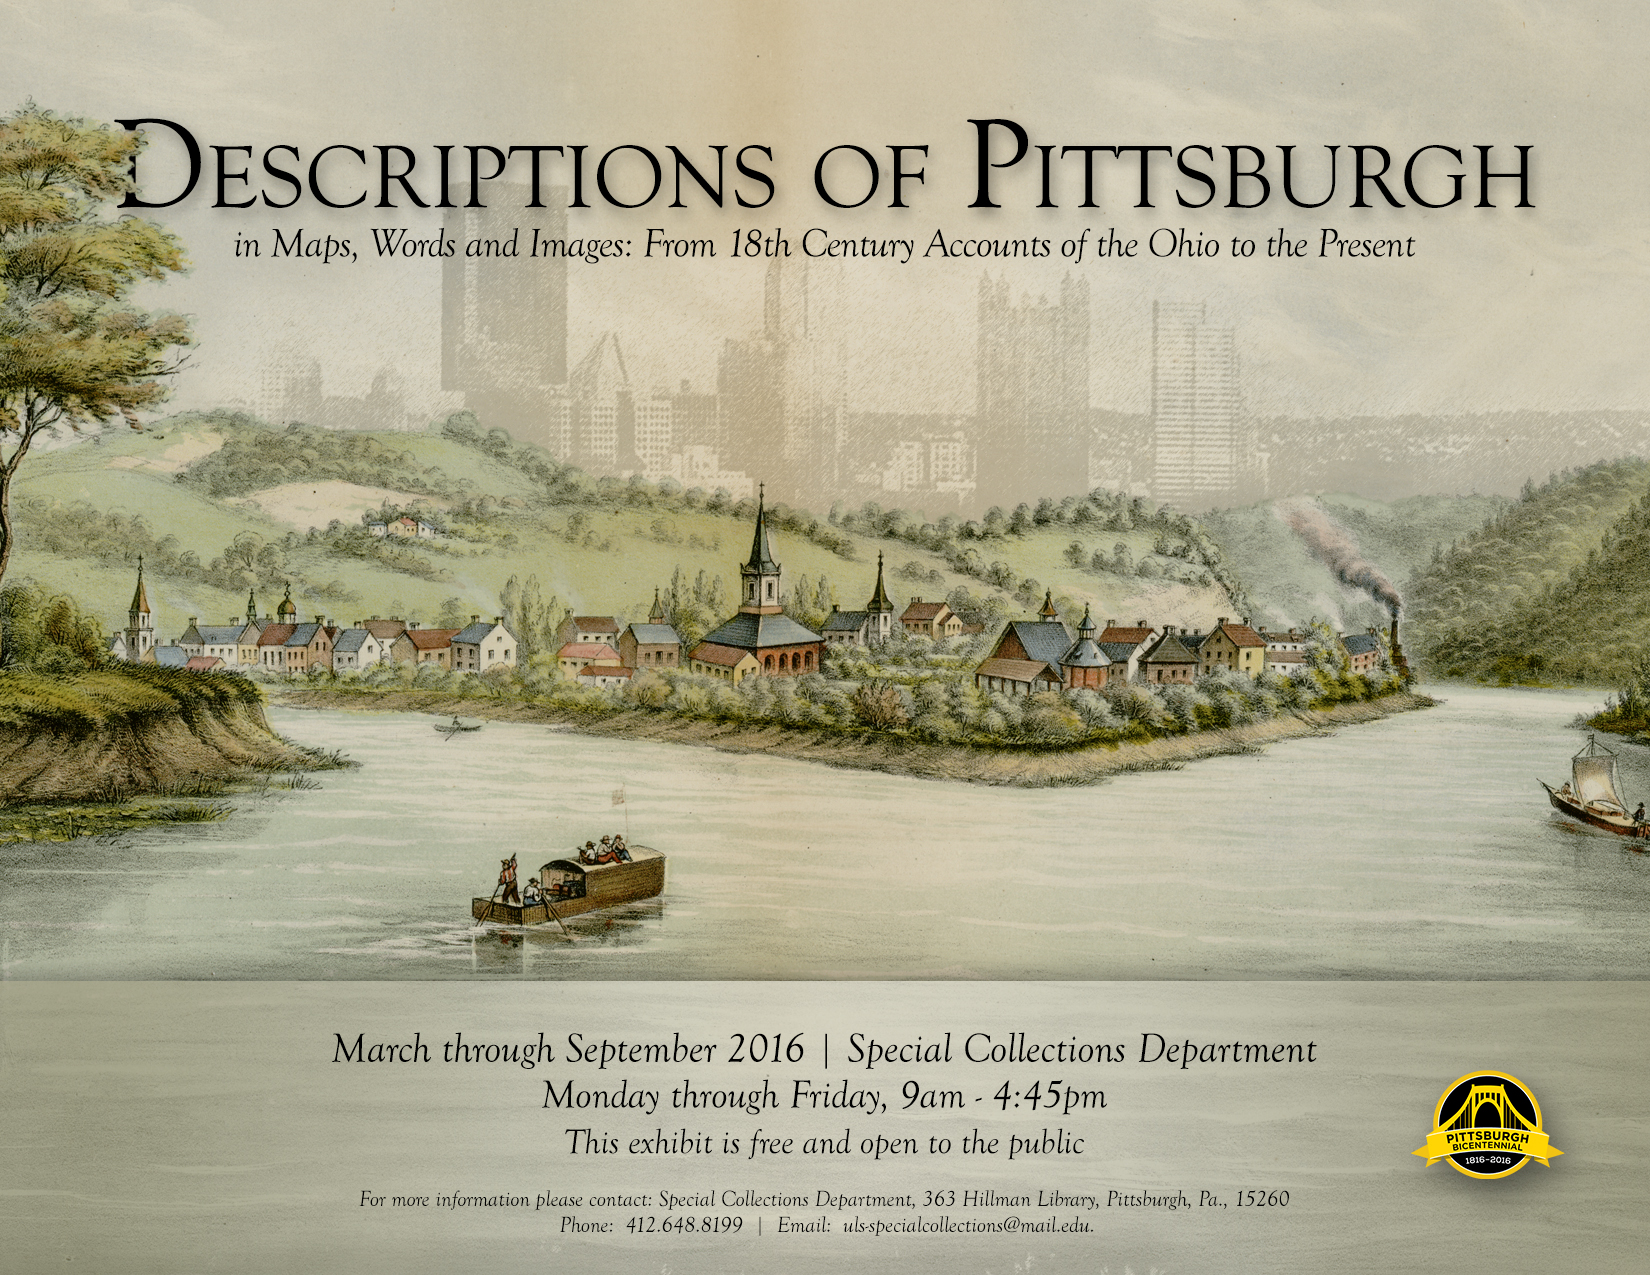 Descriptions of Pittsburgh in Maps, Words, and Images from 19th Century Accounts of the Ohio to the Present. March through July 2016, Monday through Friday 9 am to 4.45 pm. This exhibit is free and open to the public.